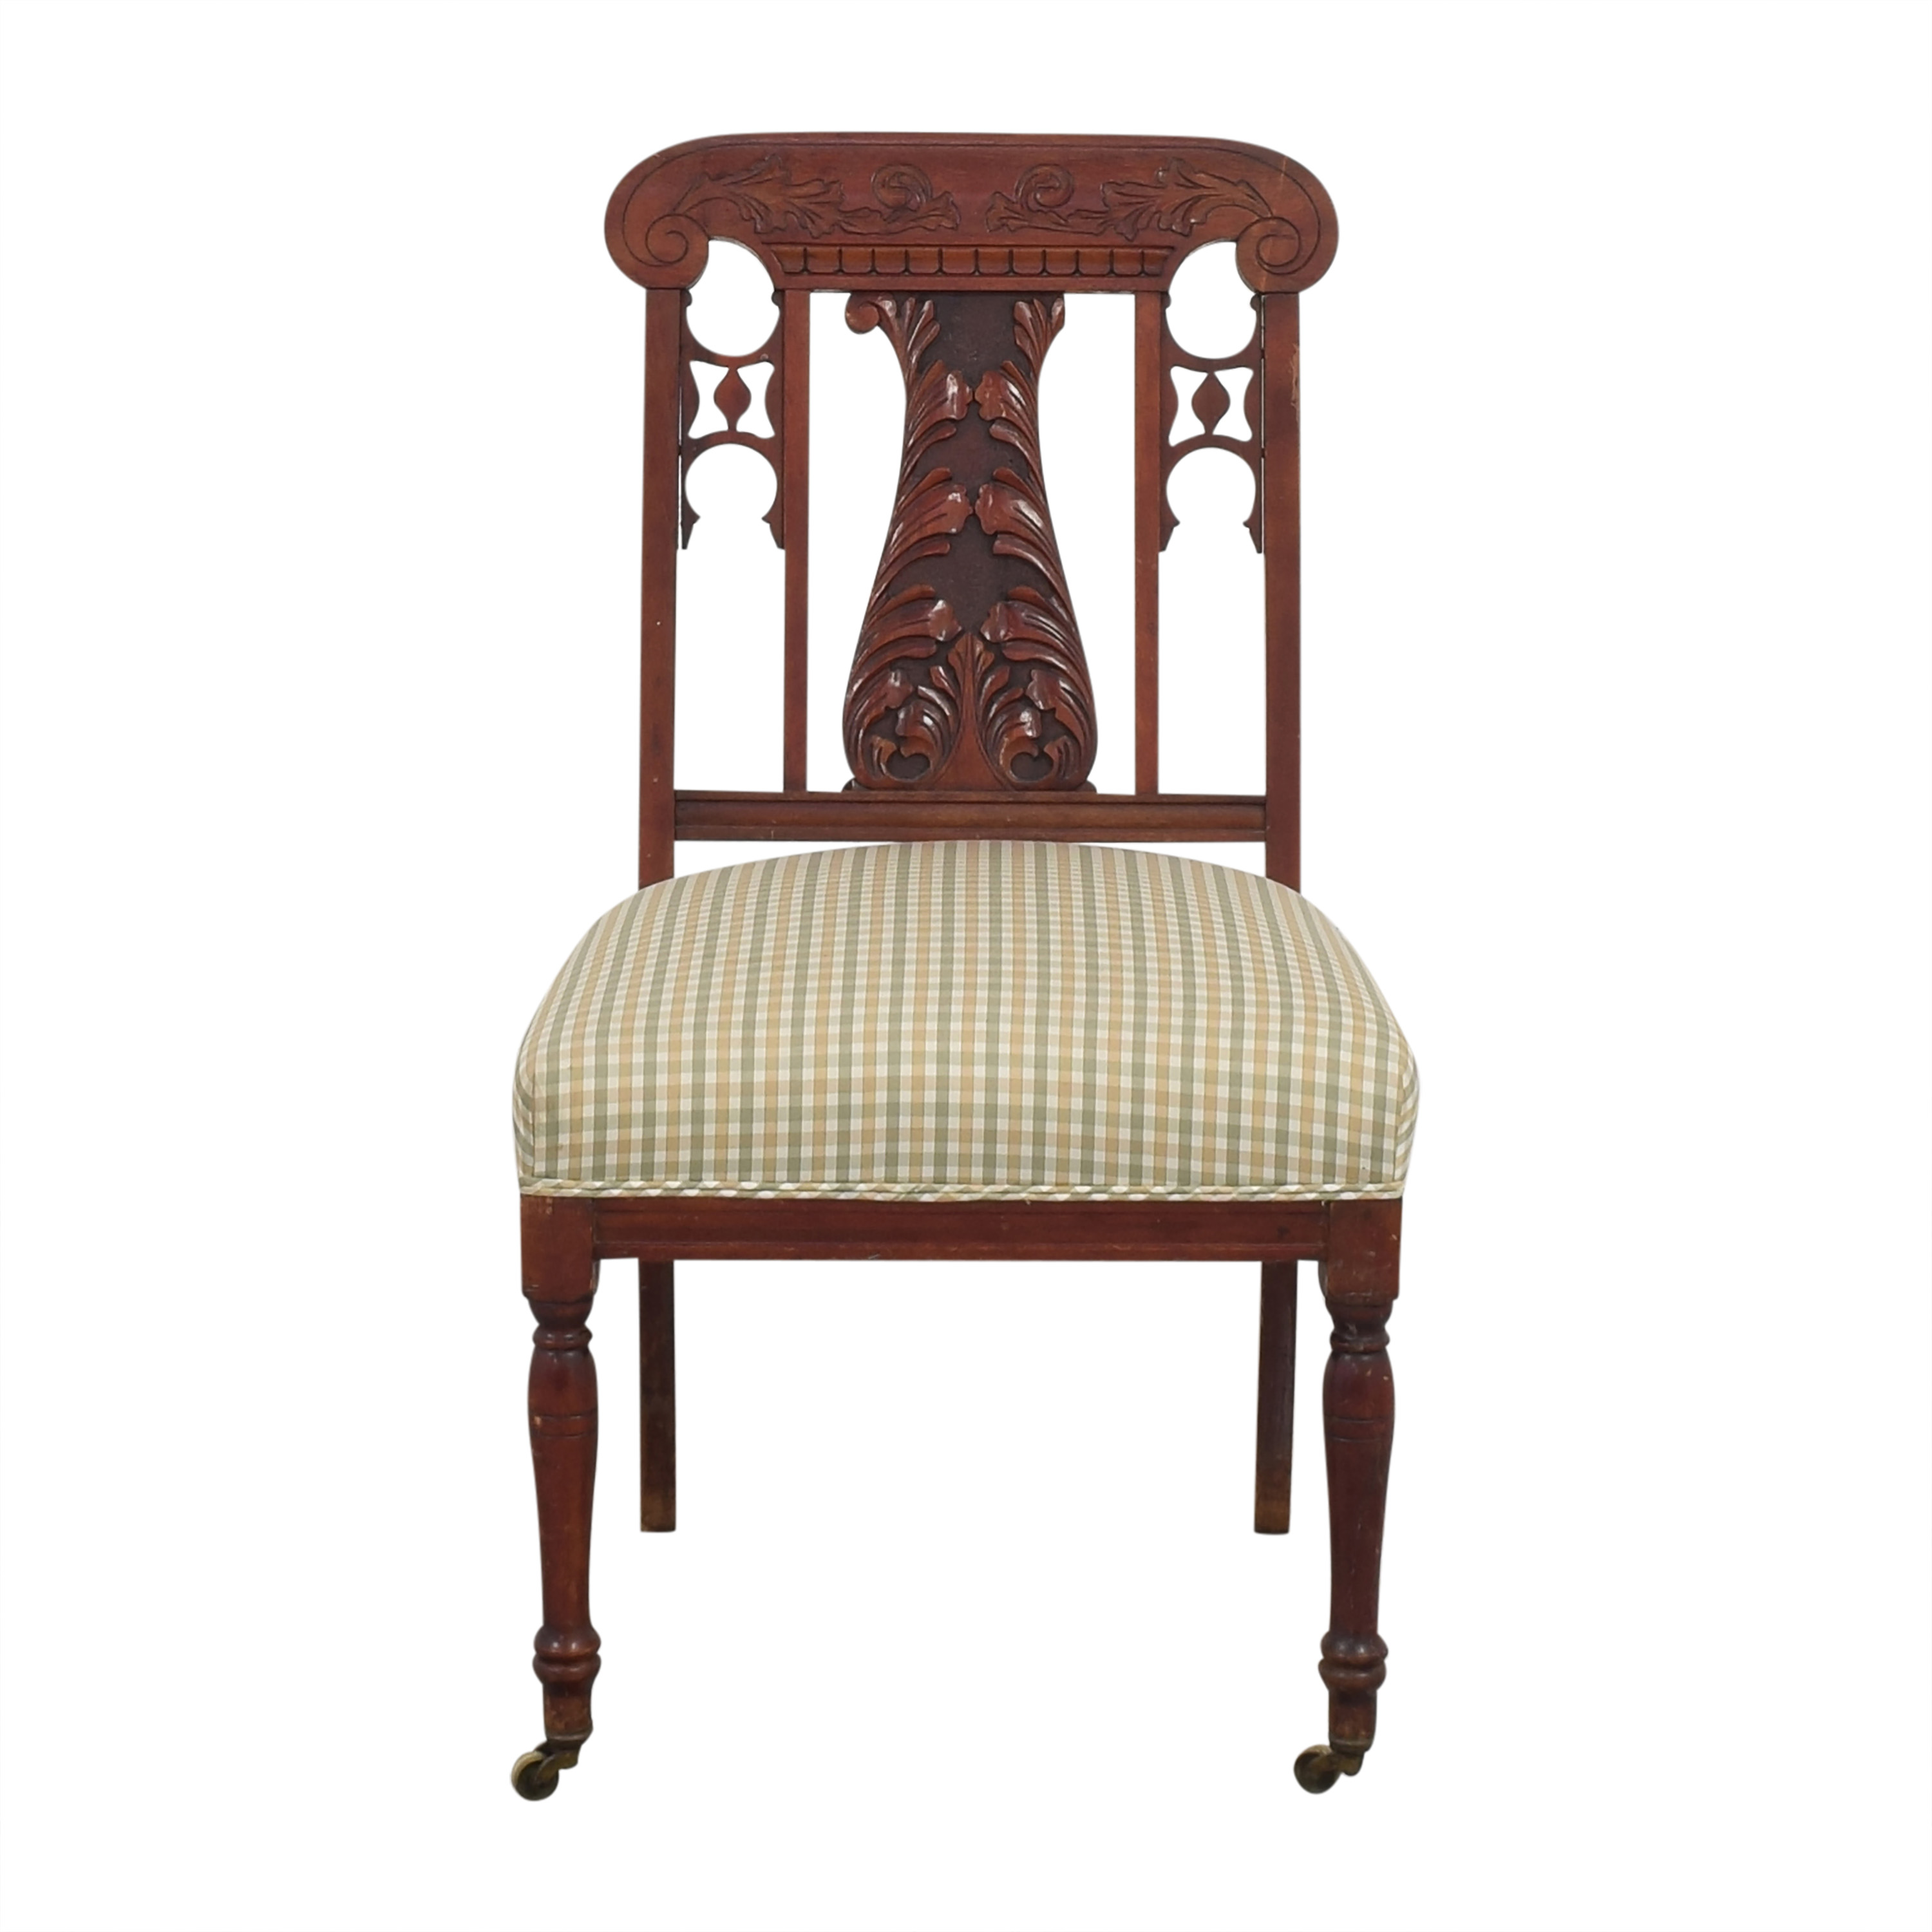 Vintage Upholstered Accent Chair second hand